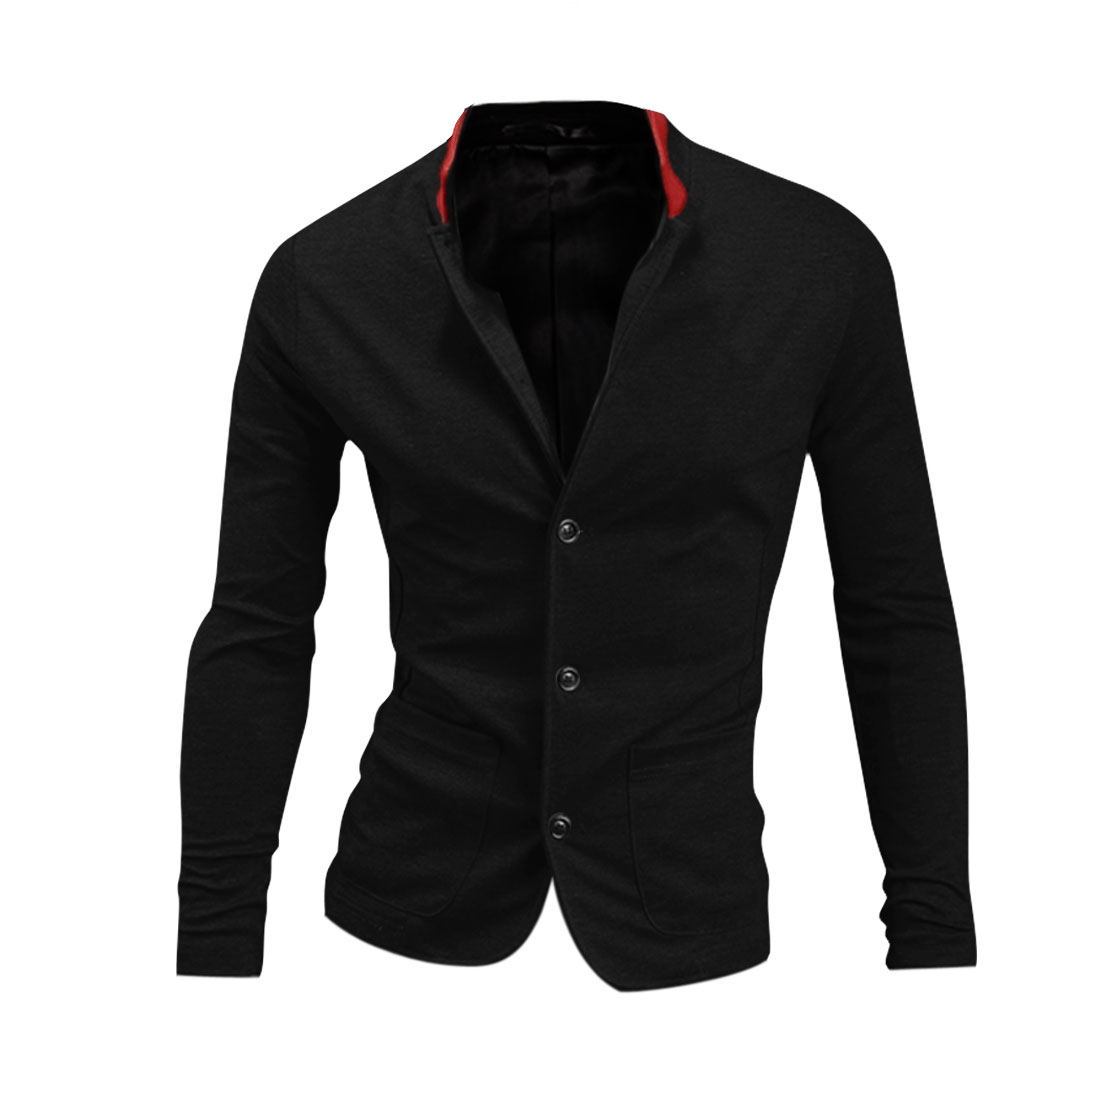 Stylish Black Color Two Front Pockets Design Button Front Coat for Man M